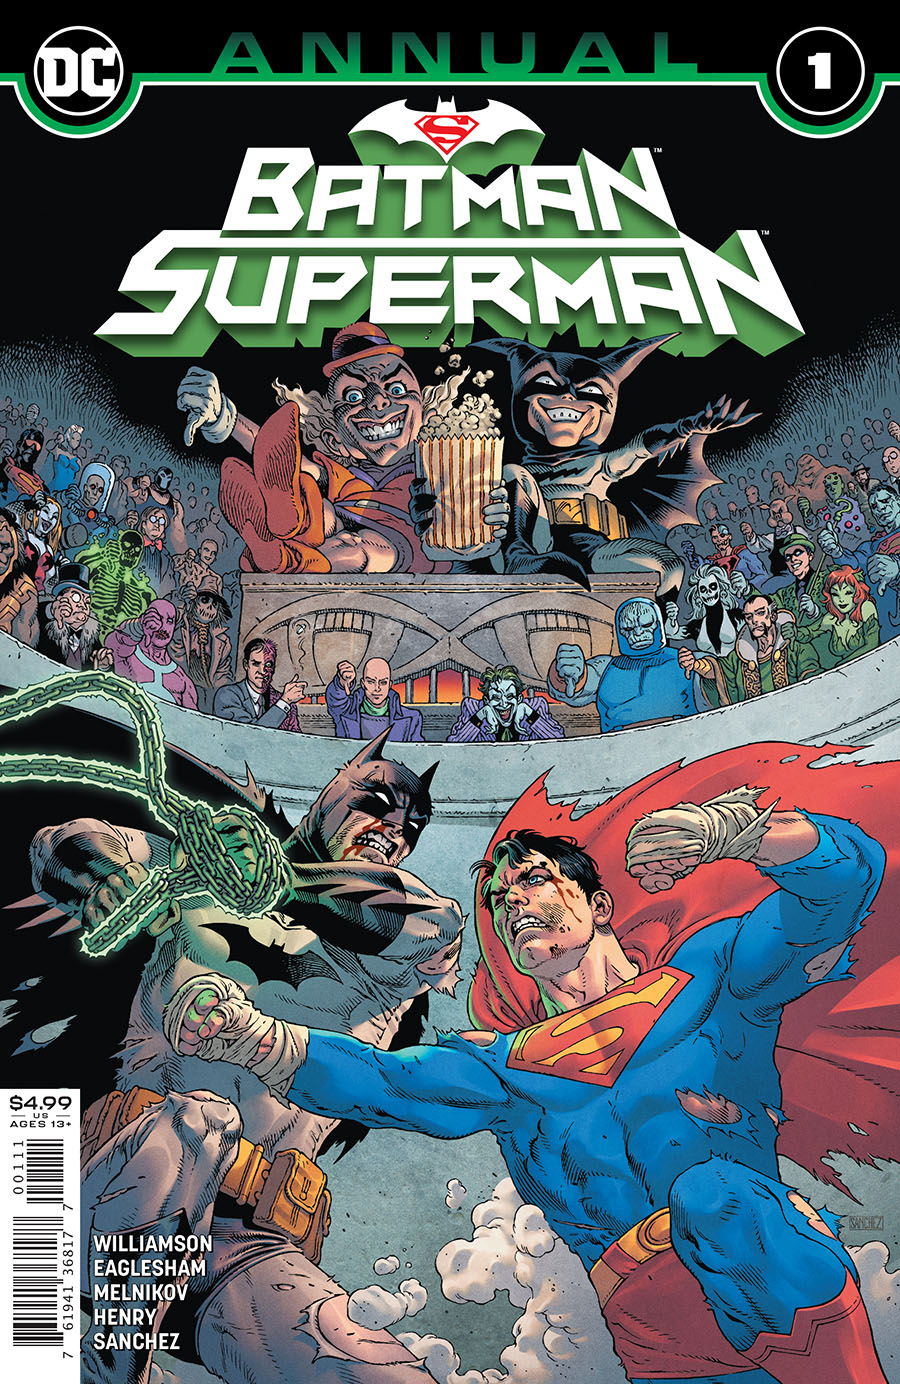 Batman Superman Vol 2 Annual #1